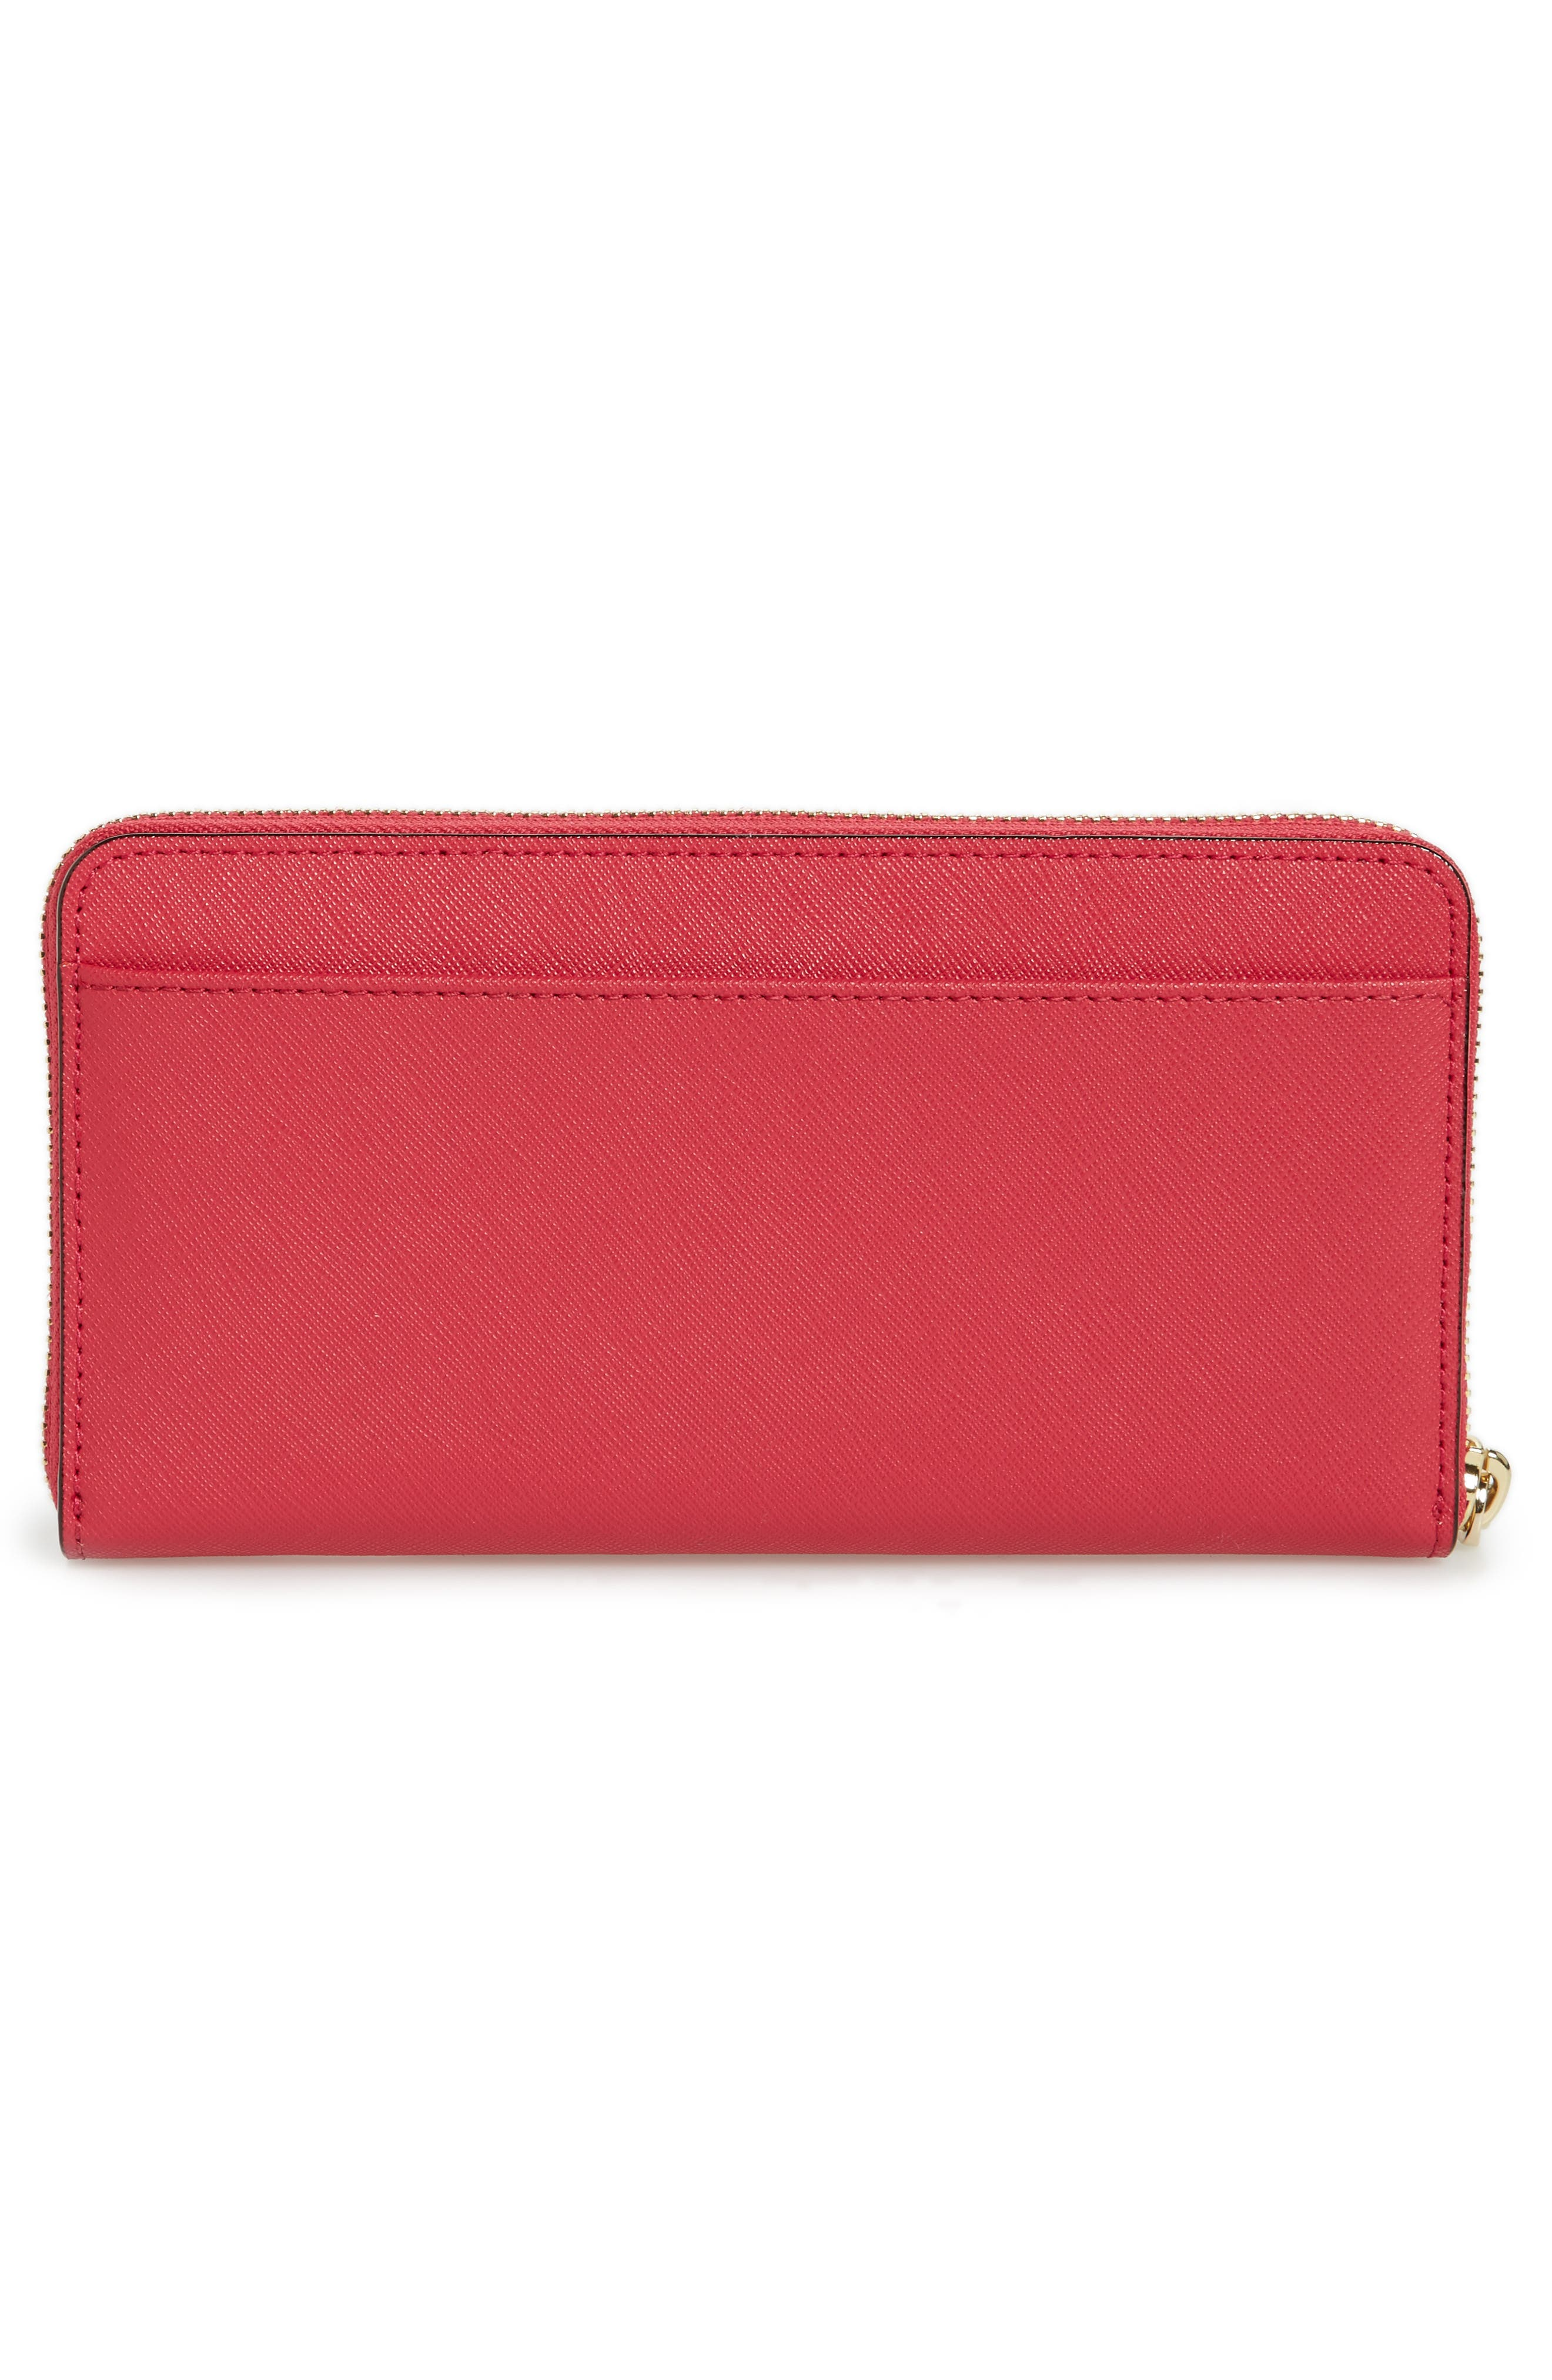 'cameron street - lacey' leather wallet,                             Alternate thumbnail 79, color,